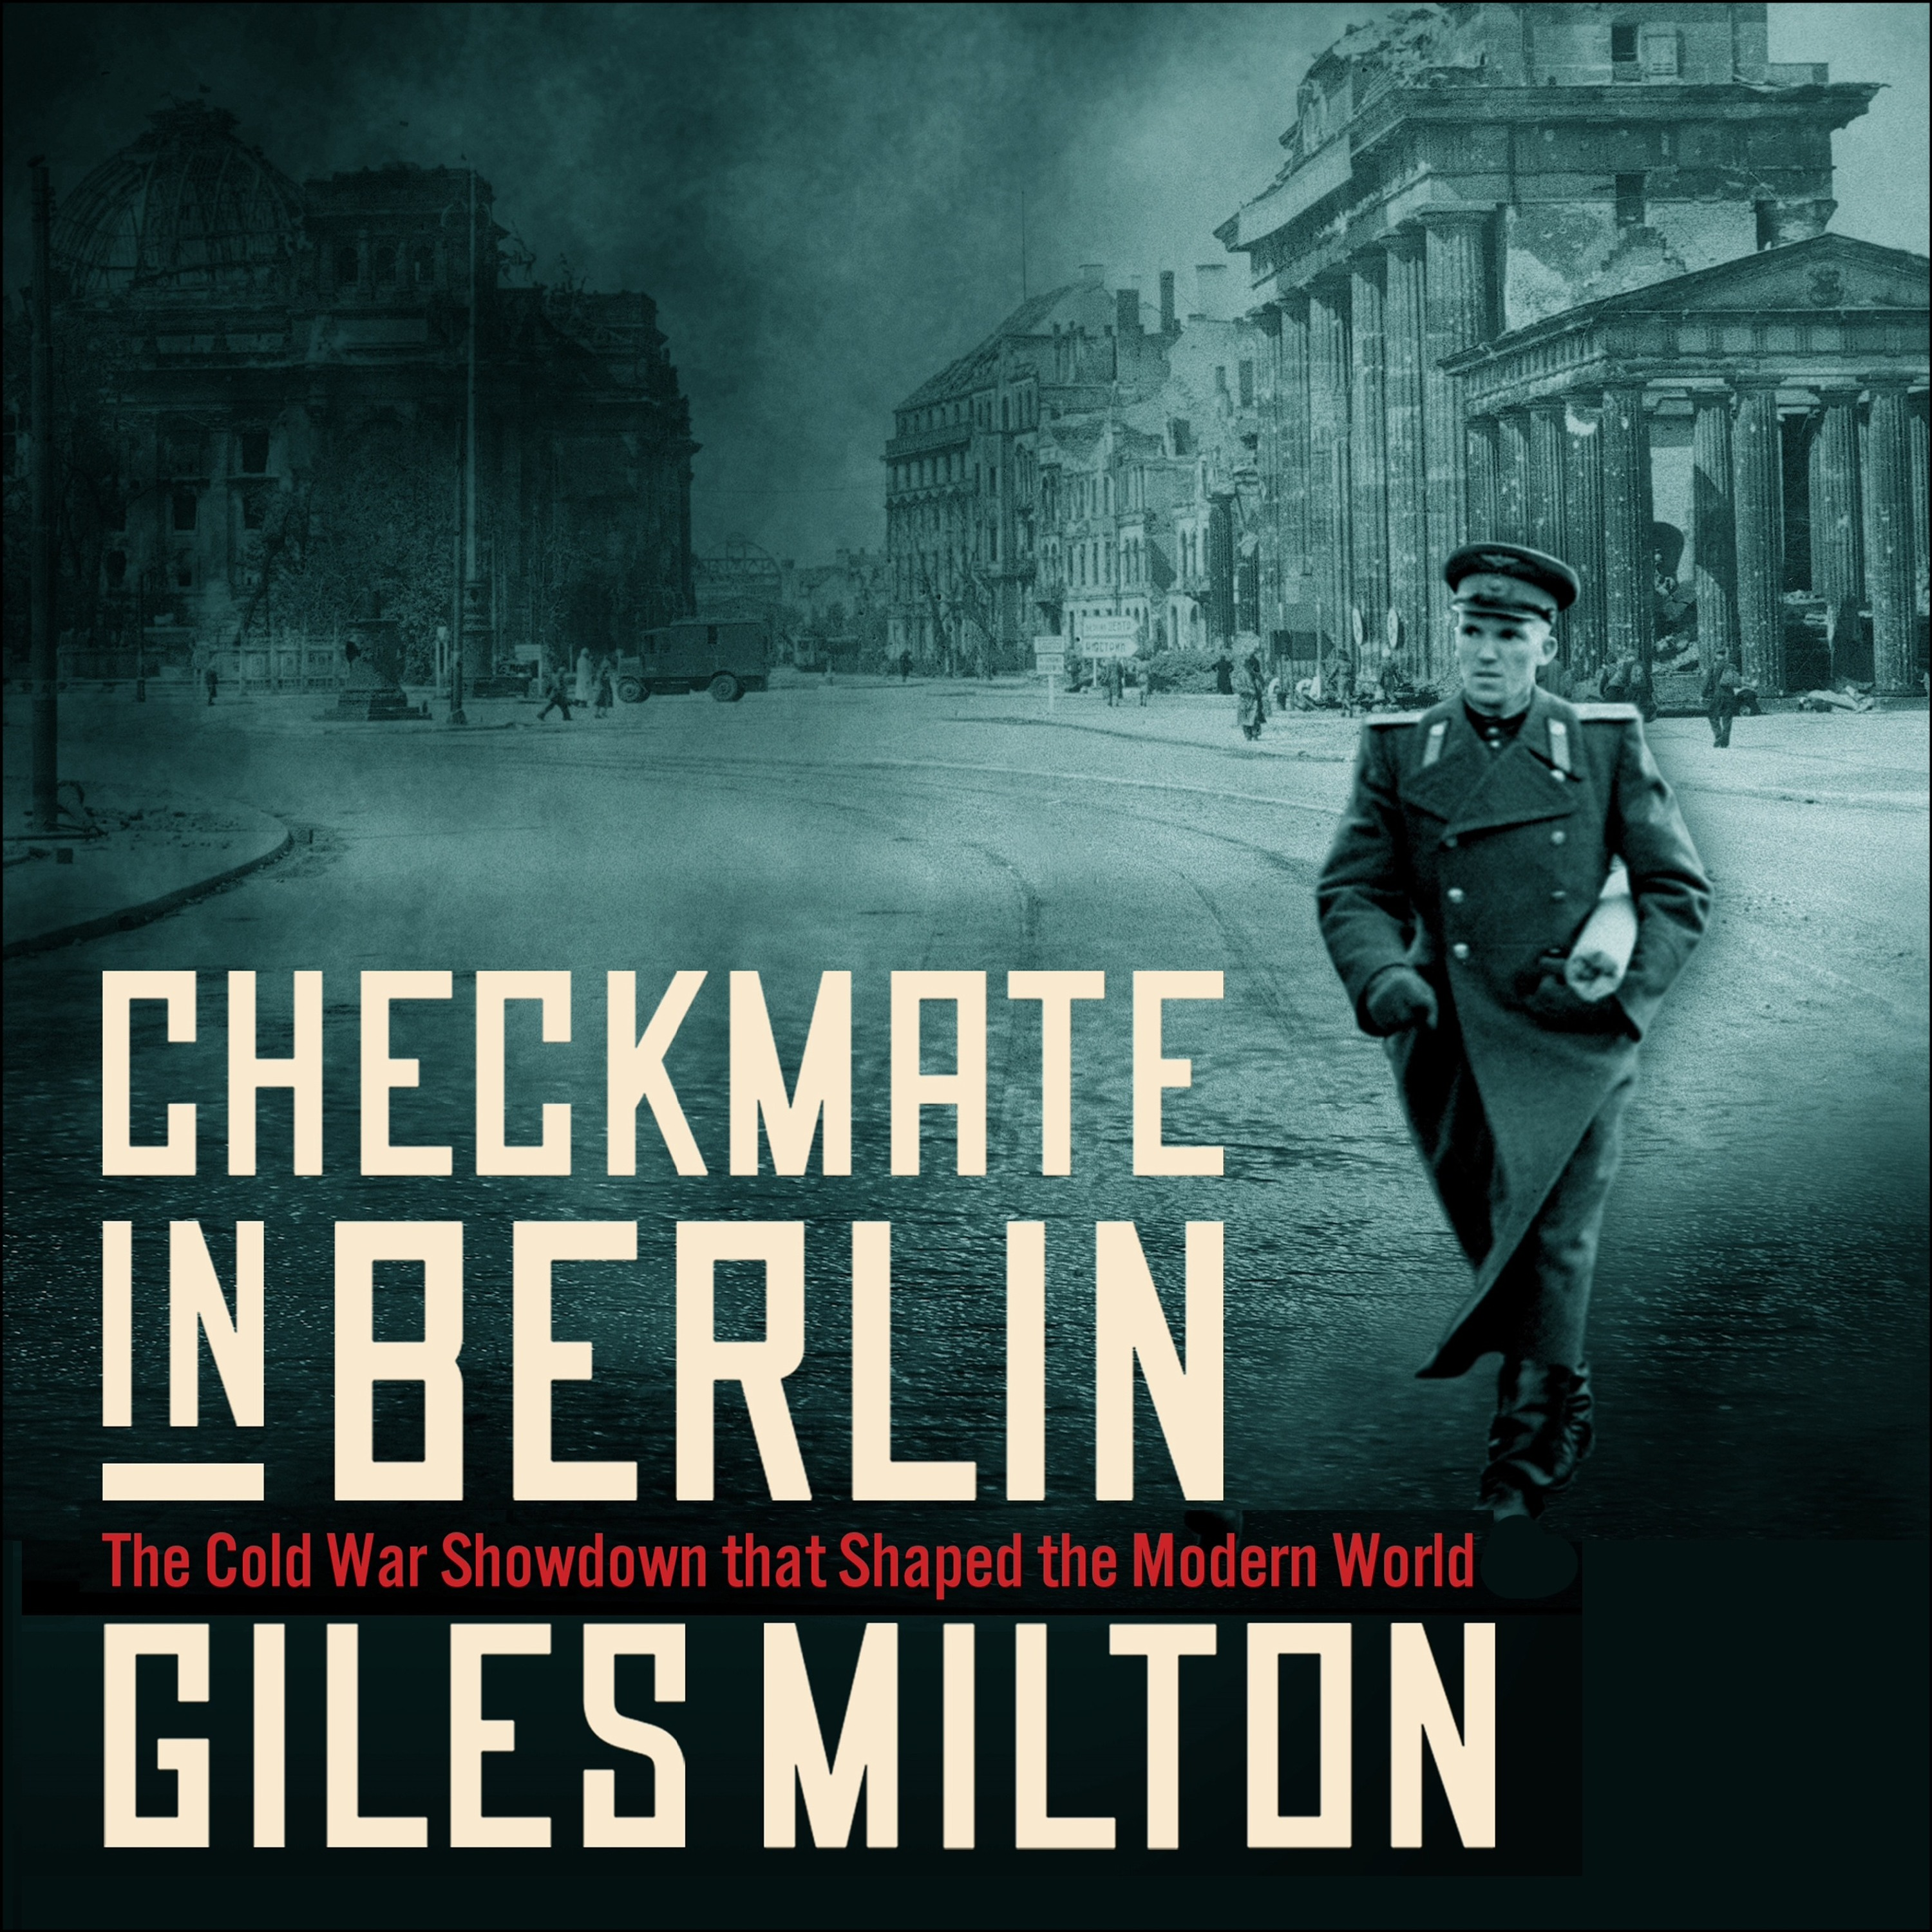 CHECKMATE IN BERLIN by Giles Milton, read by Giles Milton - audiobook extract